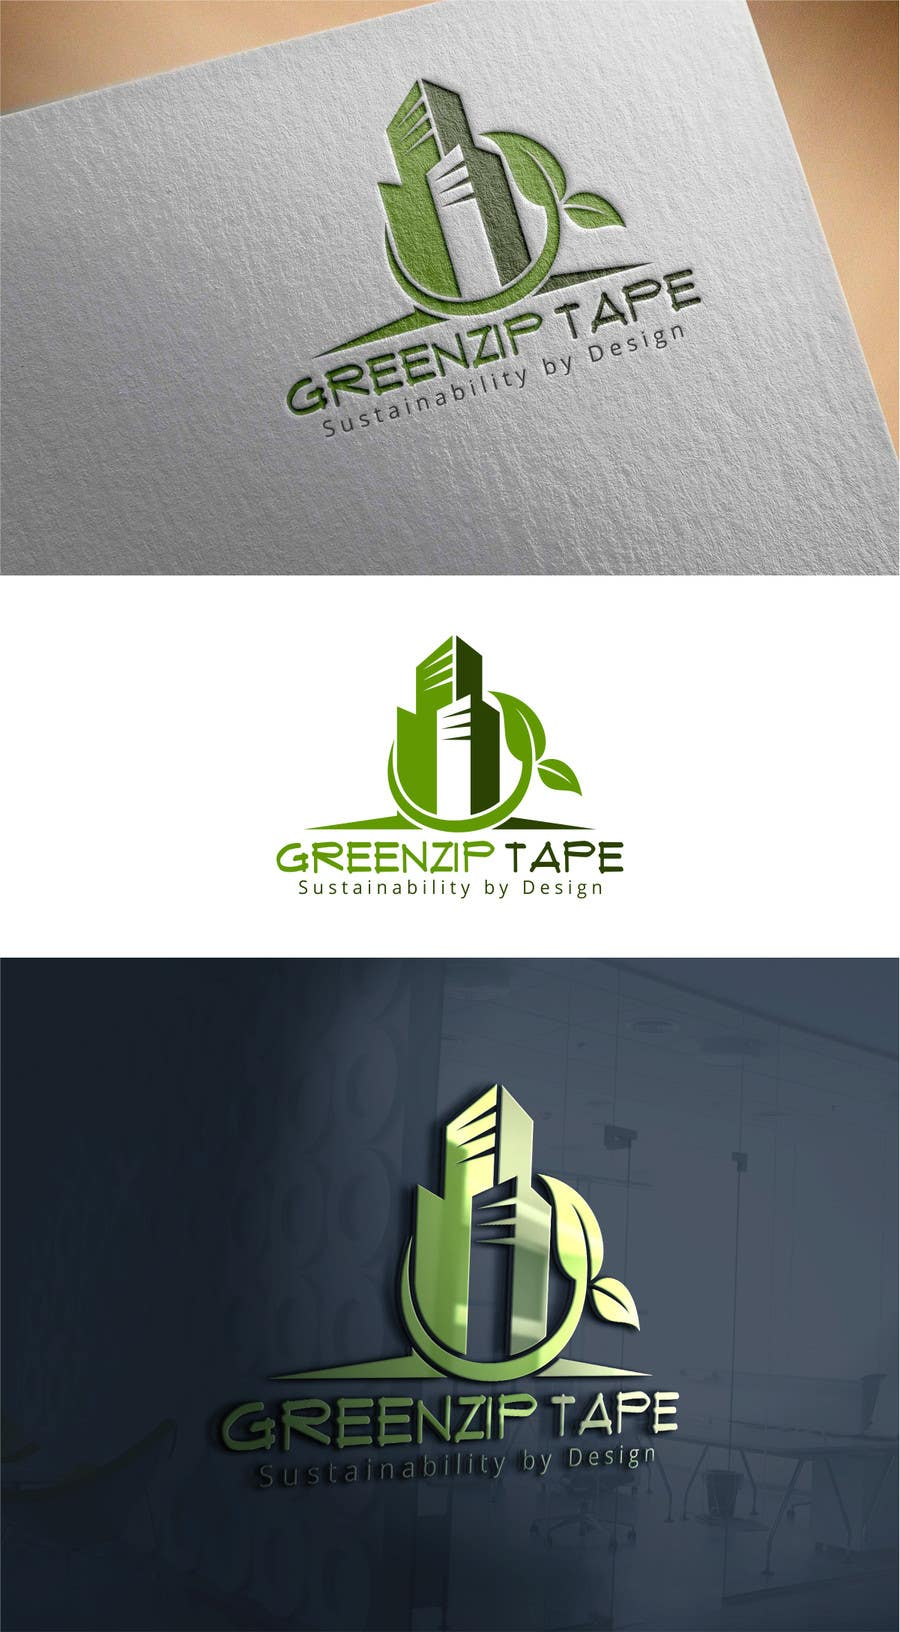 Contest Entry #593 for GREENZIP LOGO